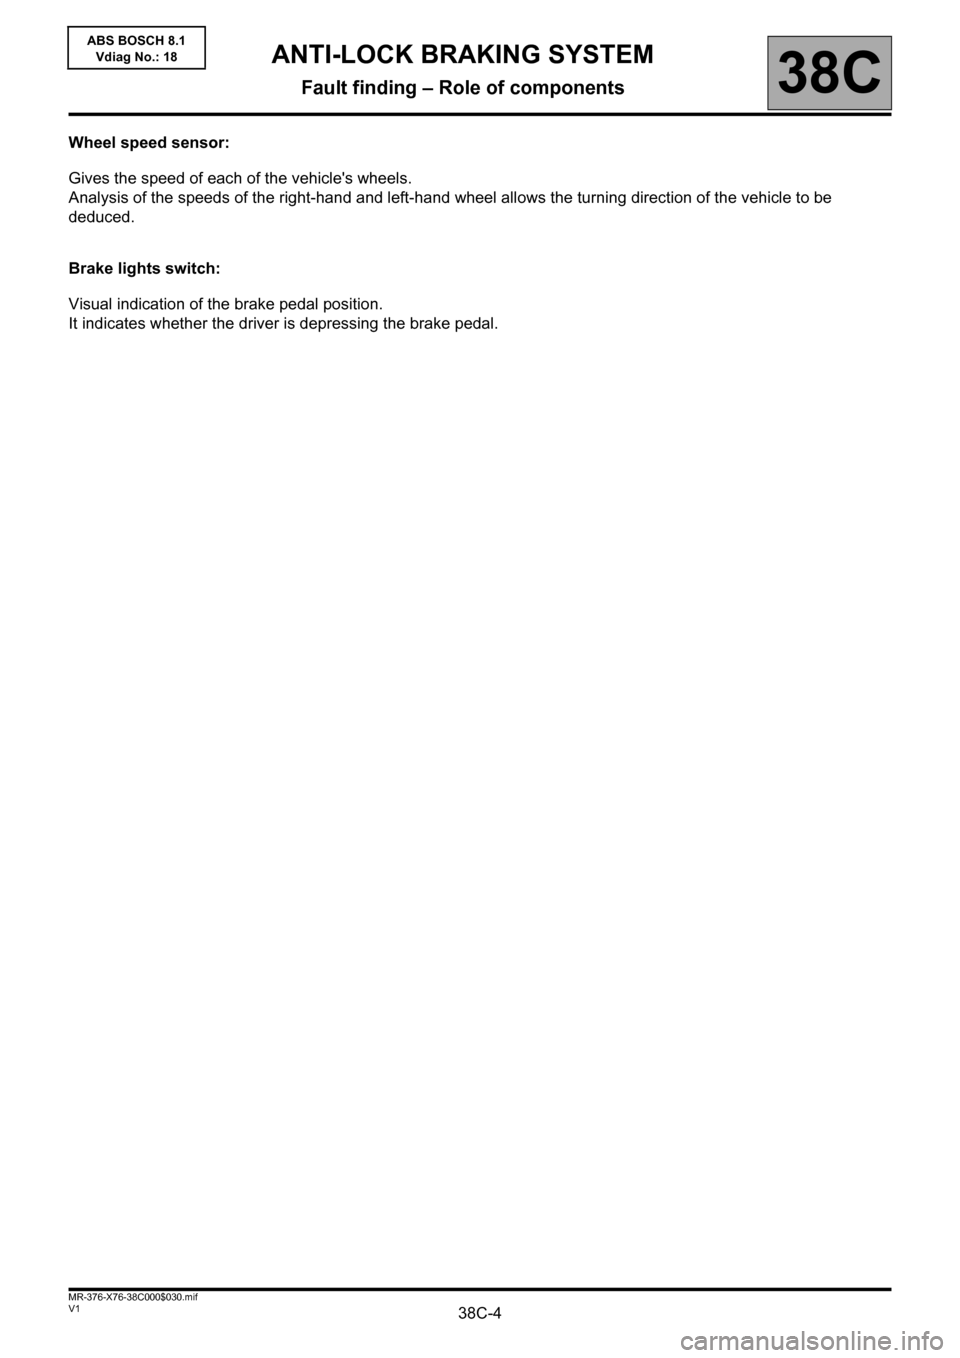 RENAULT KANGOO 2013 X61 / 2.G ABS Bosch 8.1 Workshop Manual, Page 4